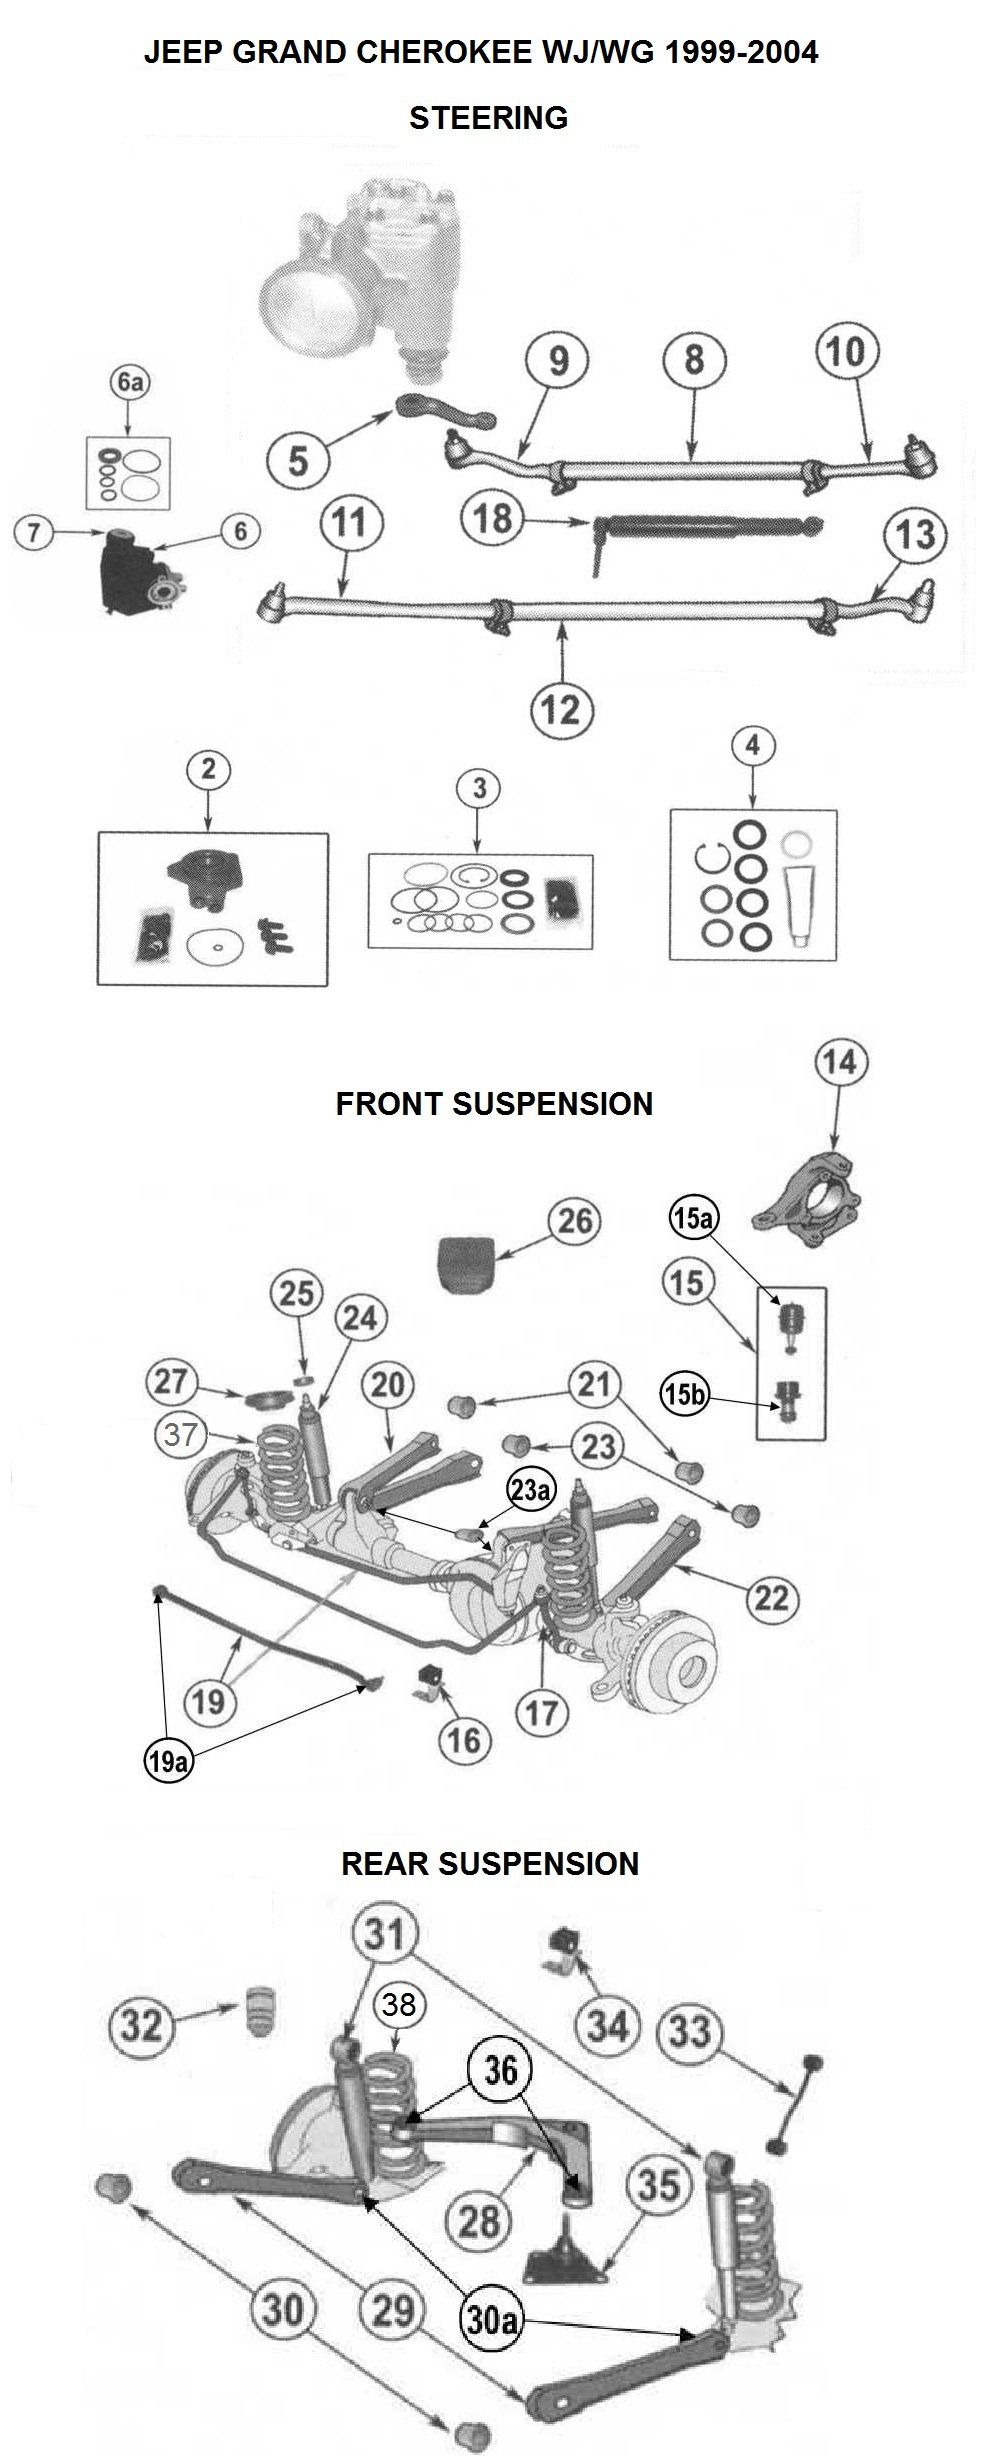 Wj Jeep Cherokee Parts Diagram Auto Wiring Used Cars